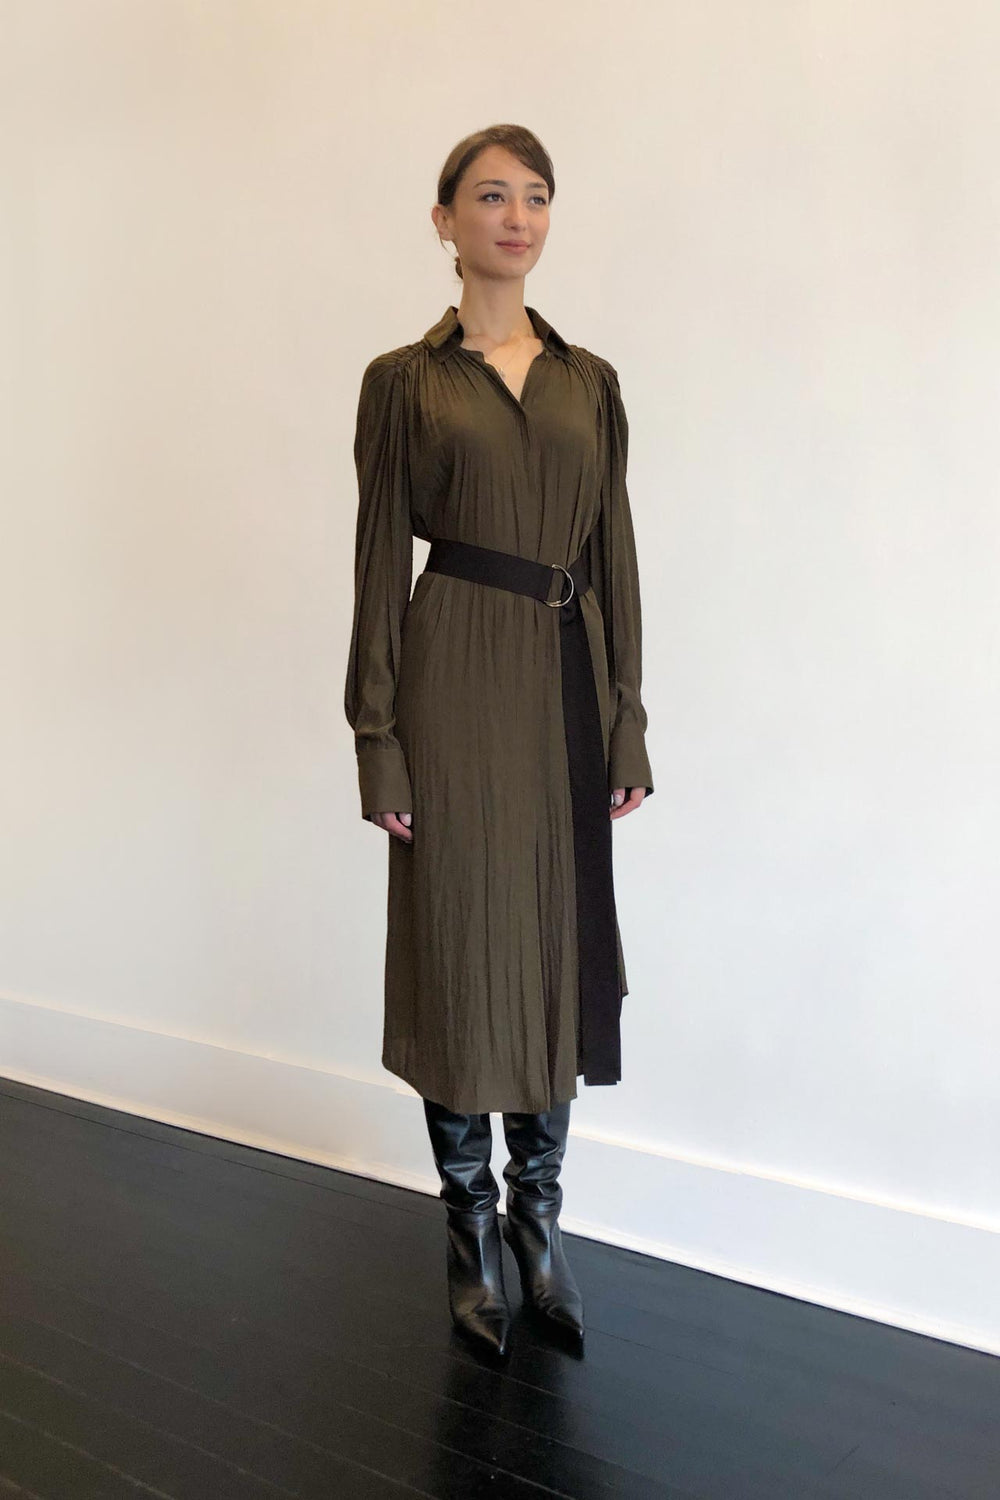 Fashion Designer CARL KAPP collection | Pheasant Onesize Fits All cocktail dress with sleeves Khaki | Sydney Australia